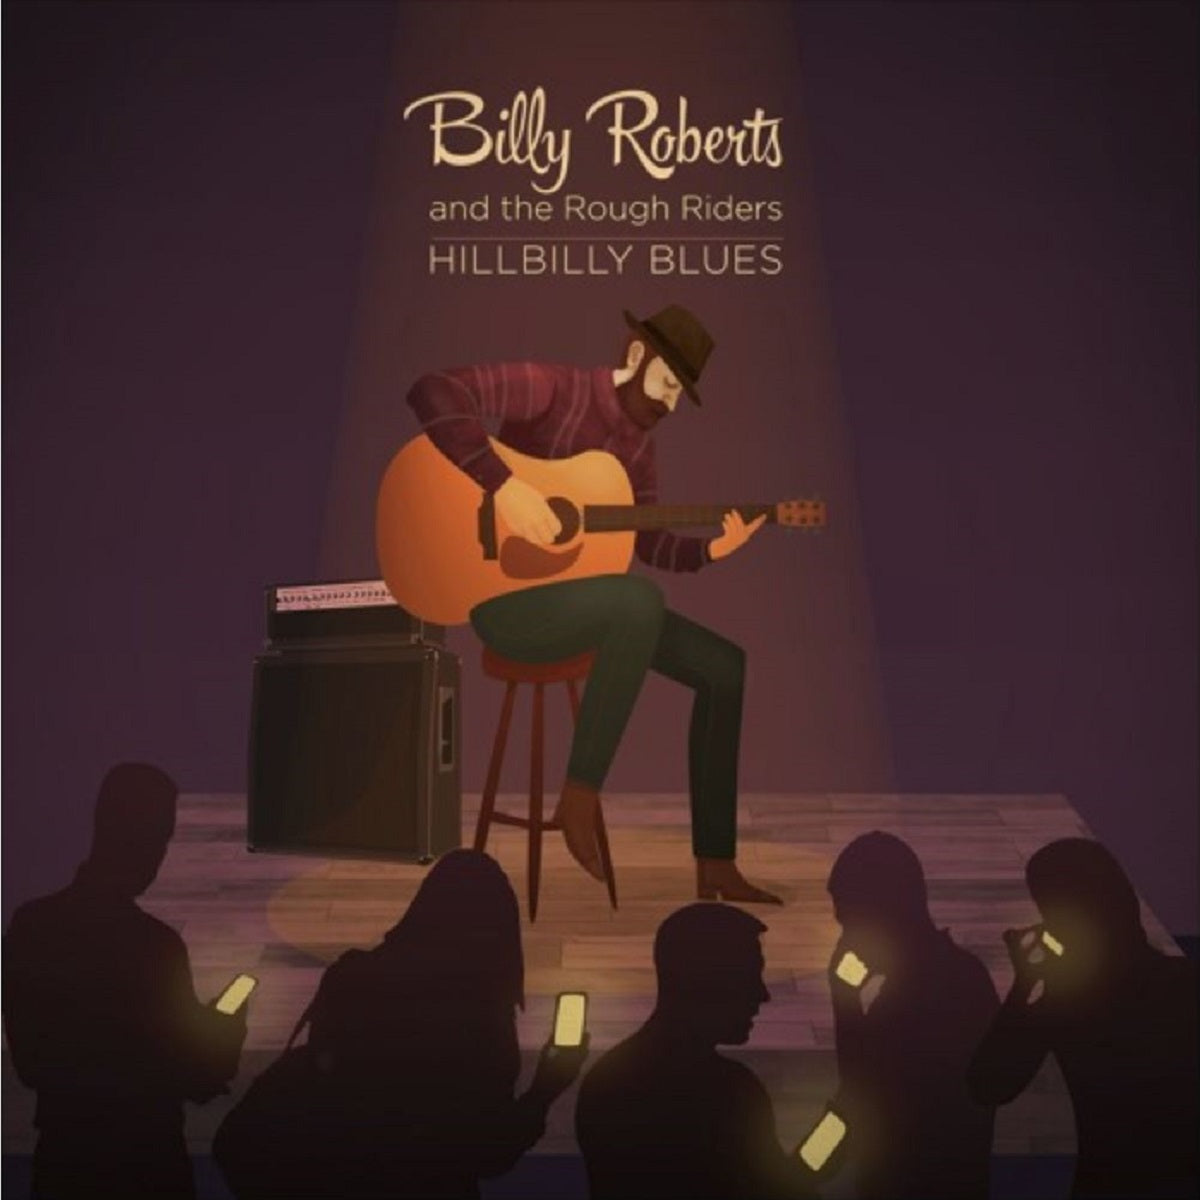 Billy Roberts and The Rough Riders - 'HillBilly Blues'